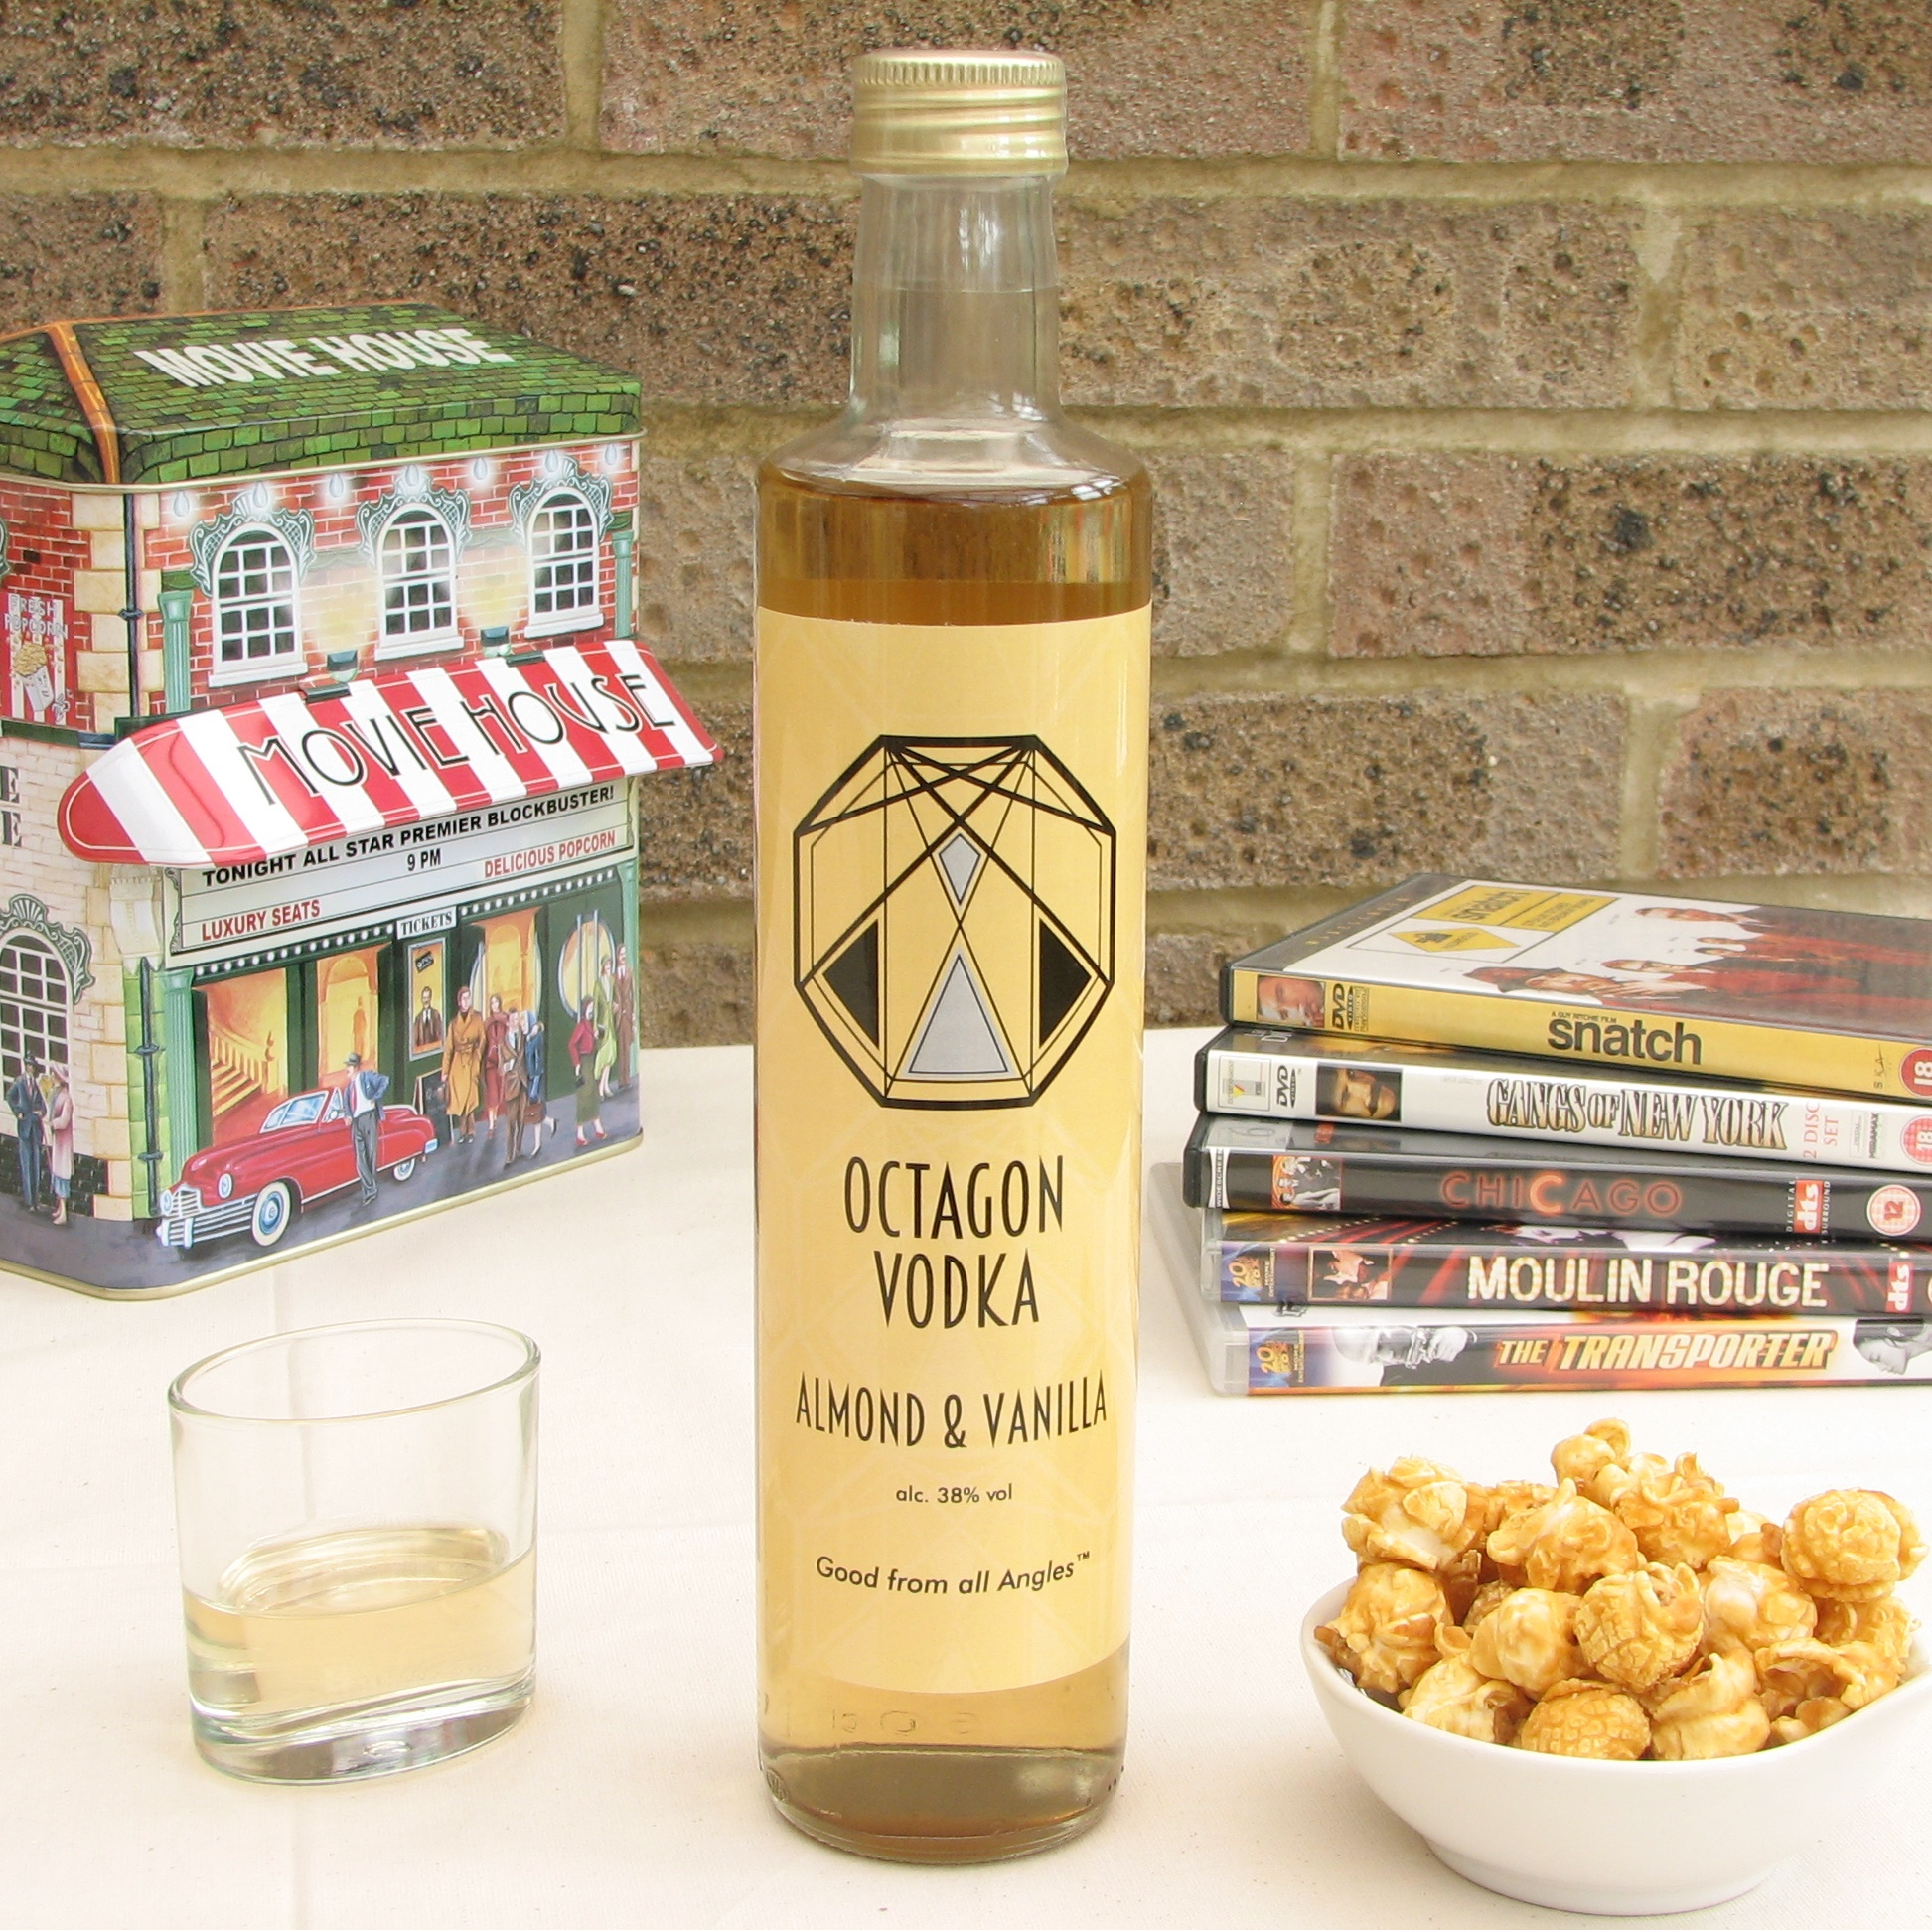 Almond & Vanilla Octagon Vodka 38% 100ml & 250ml